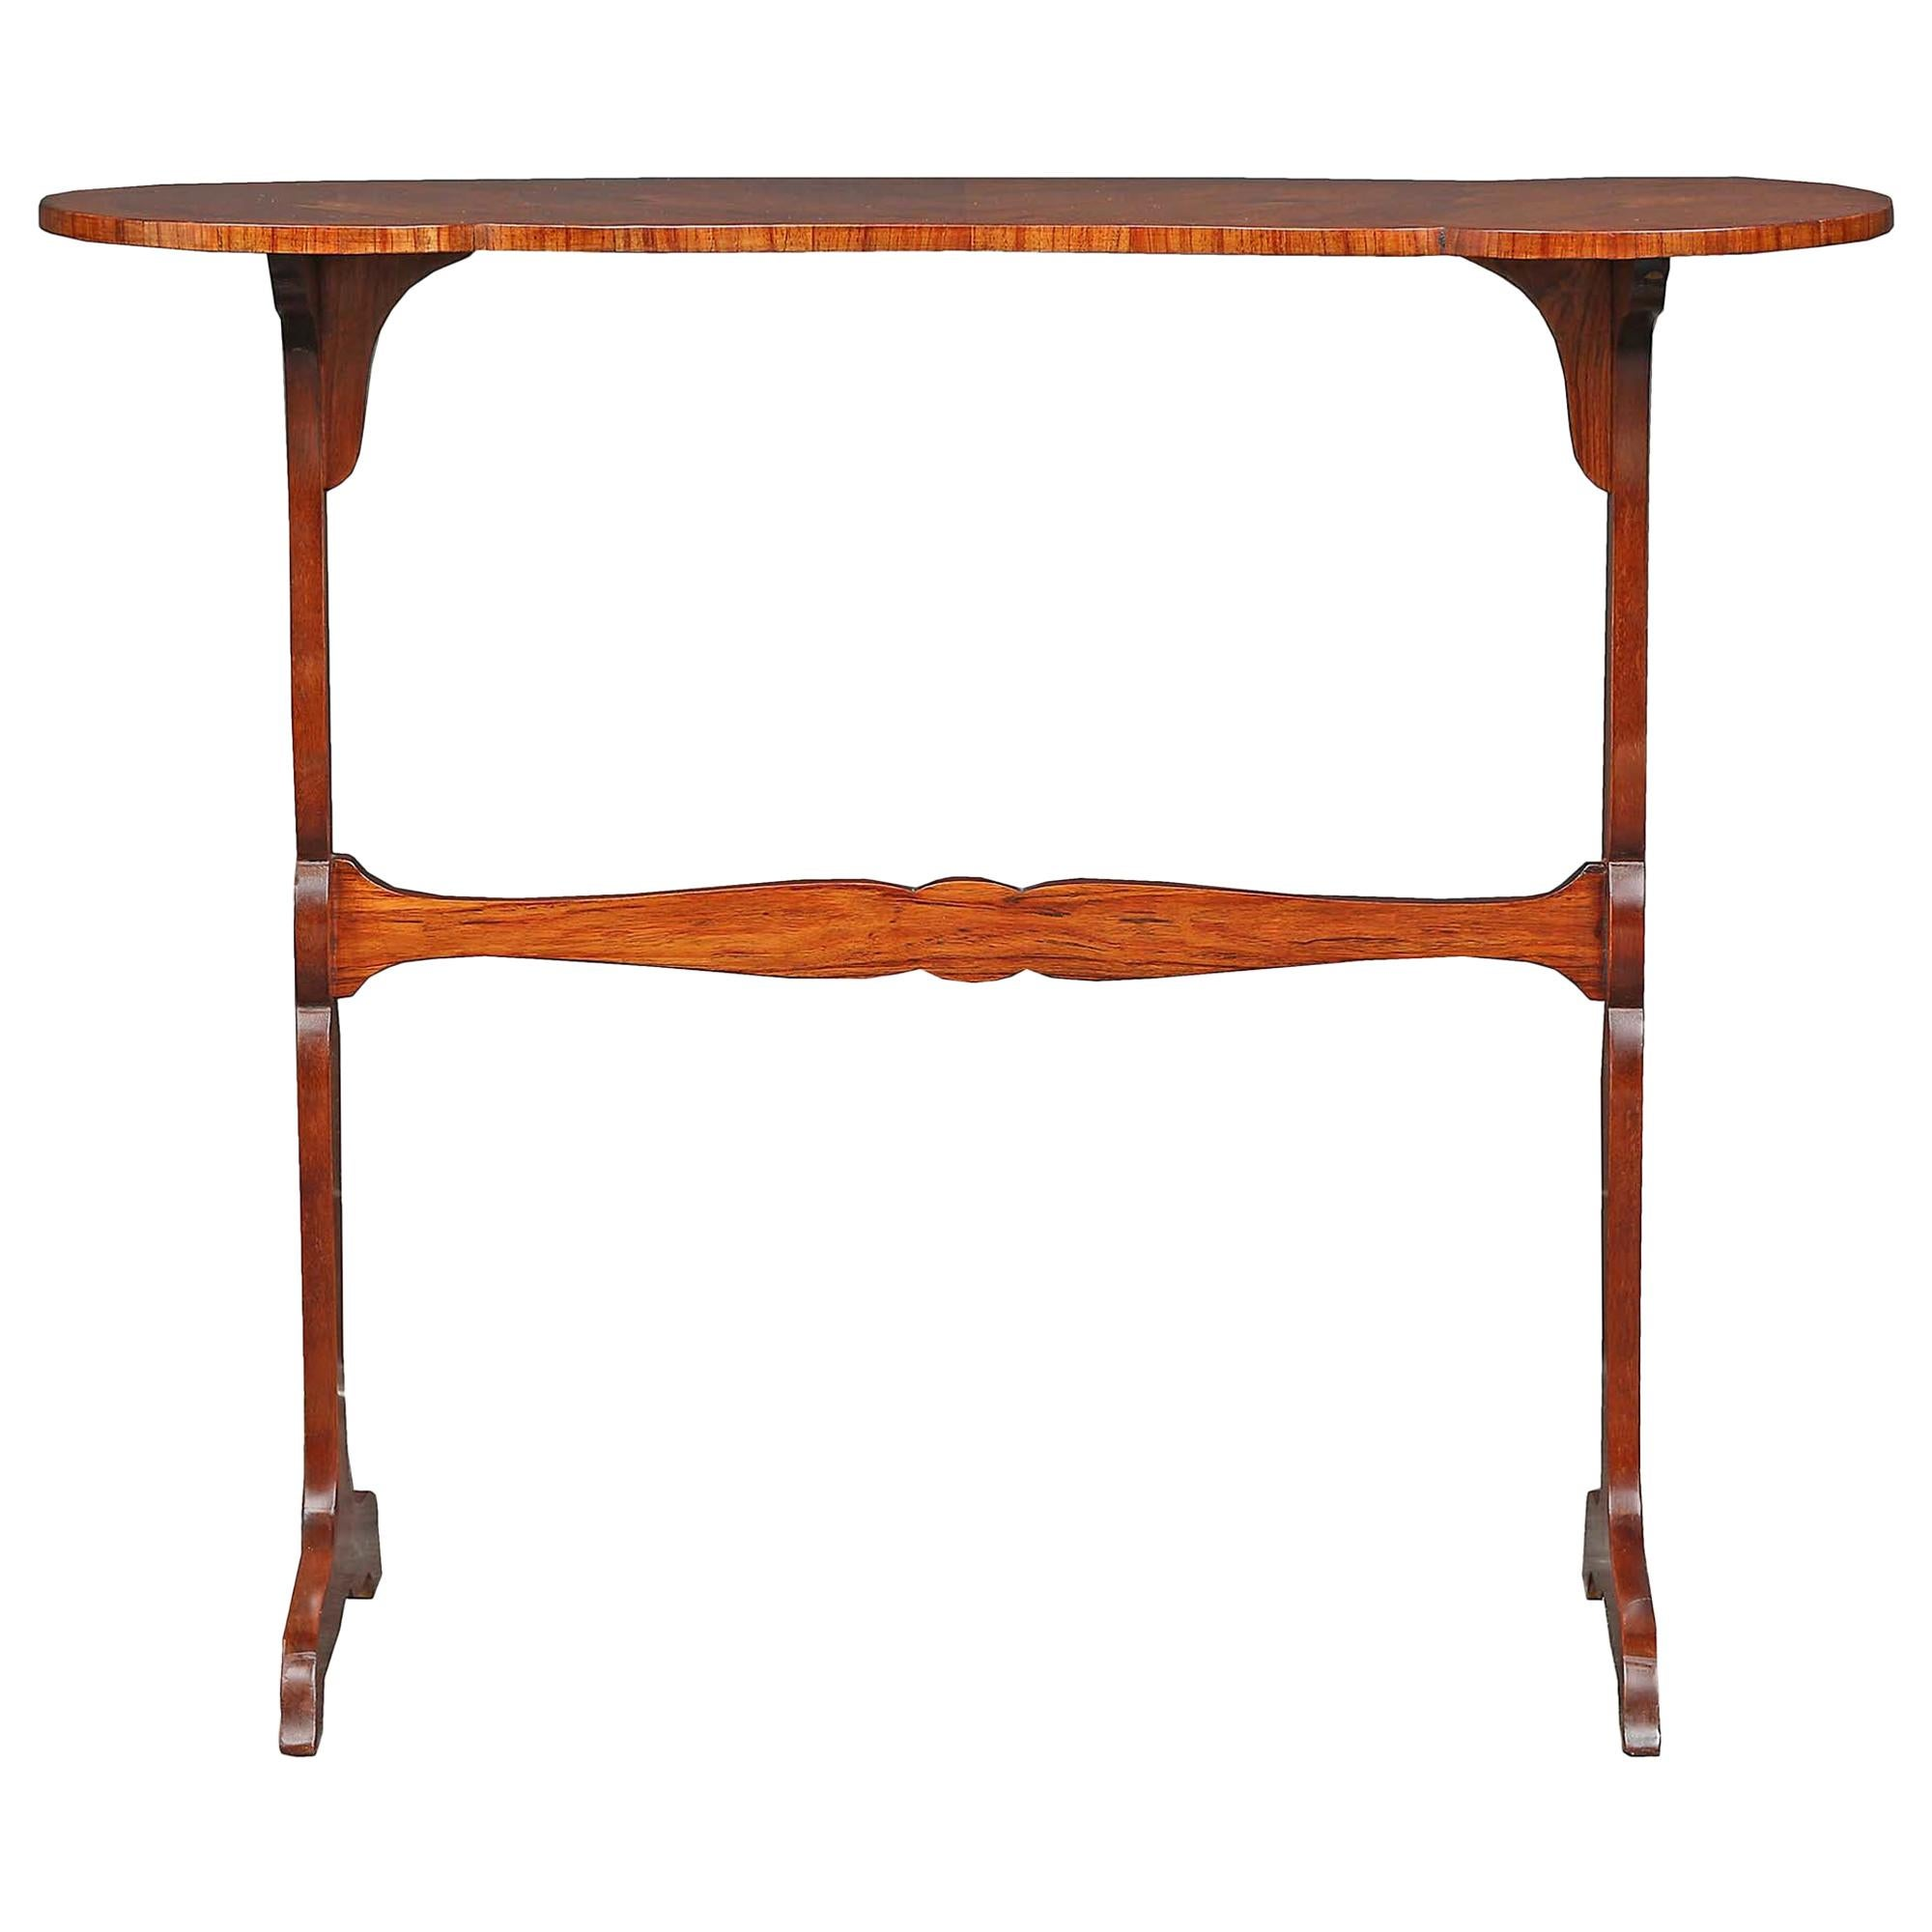 French 19th Century Louis XV Style Tulipwood Kidney Shape Table